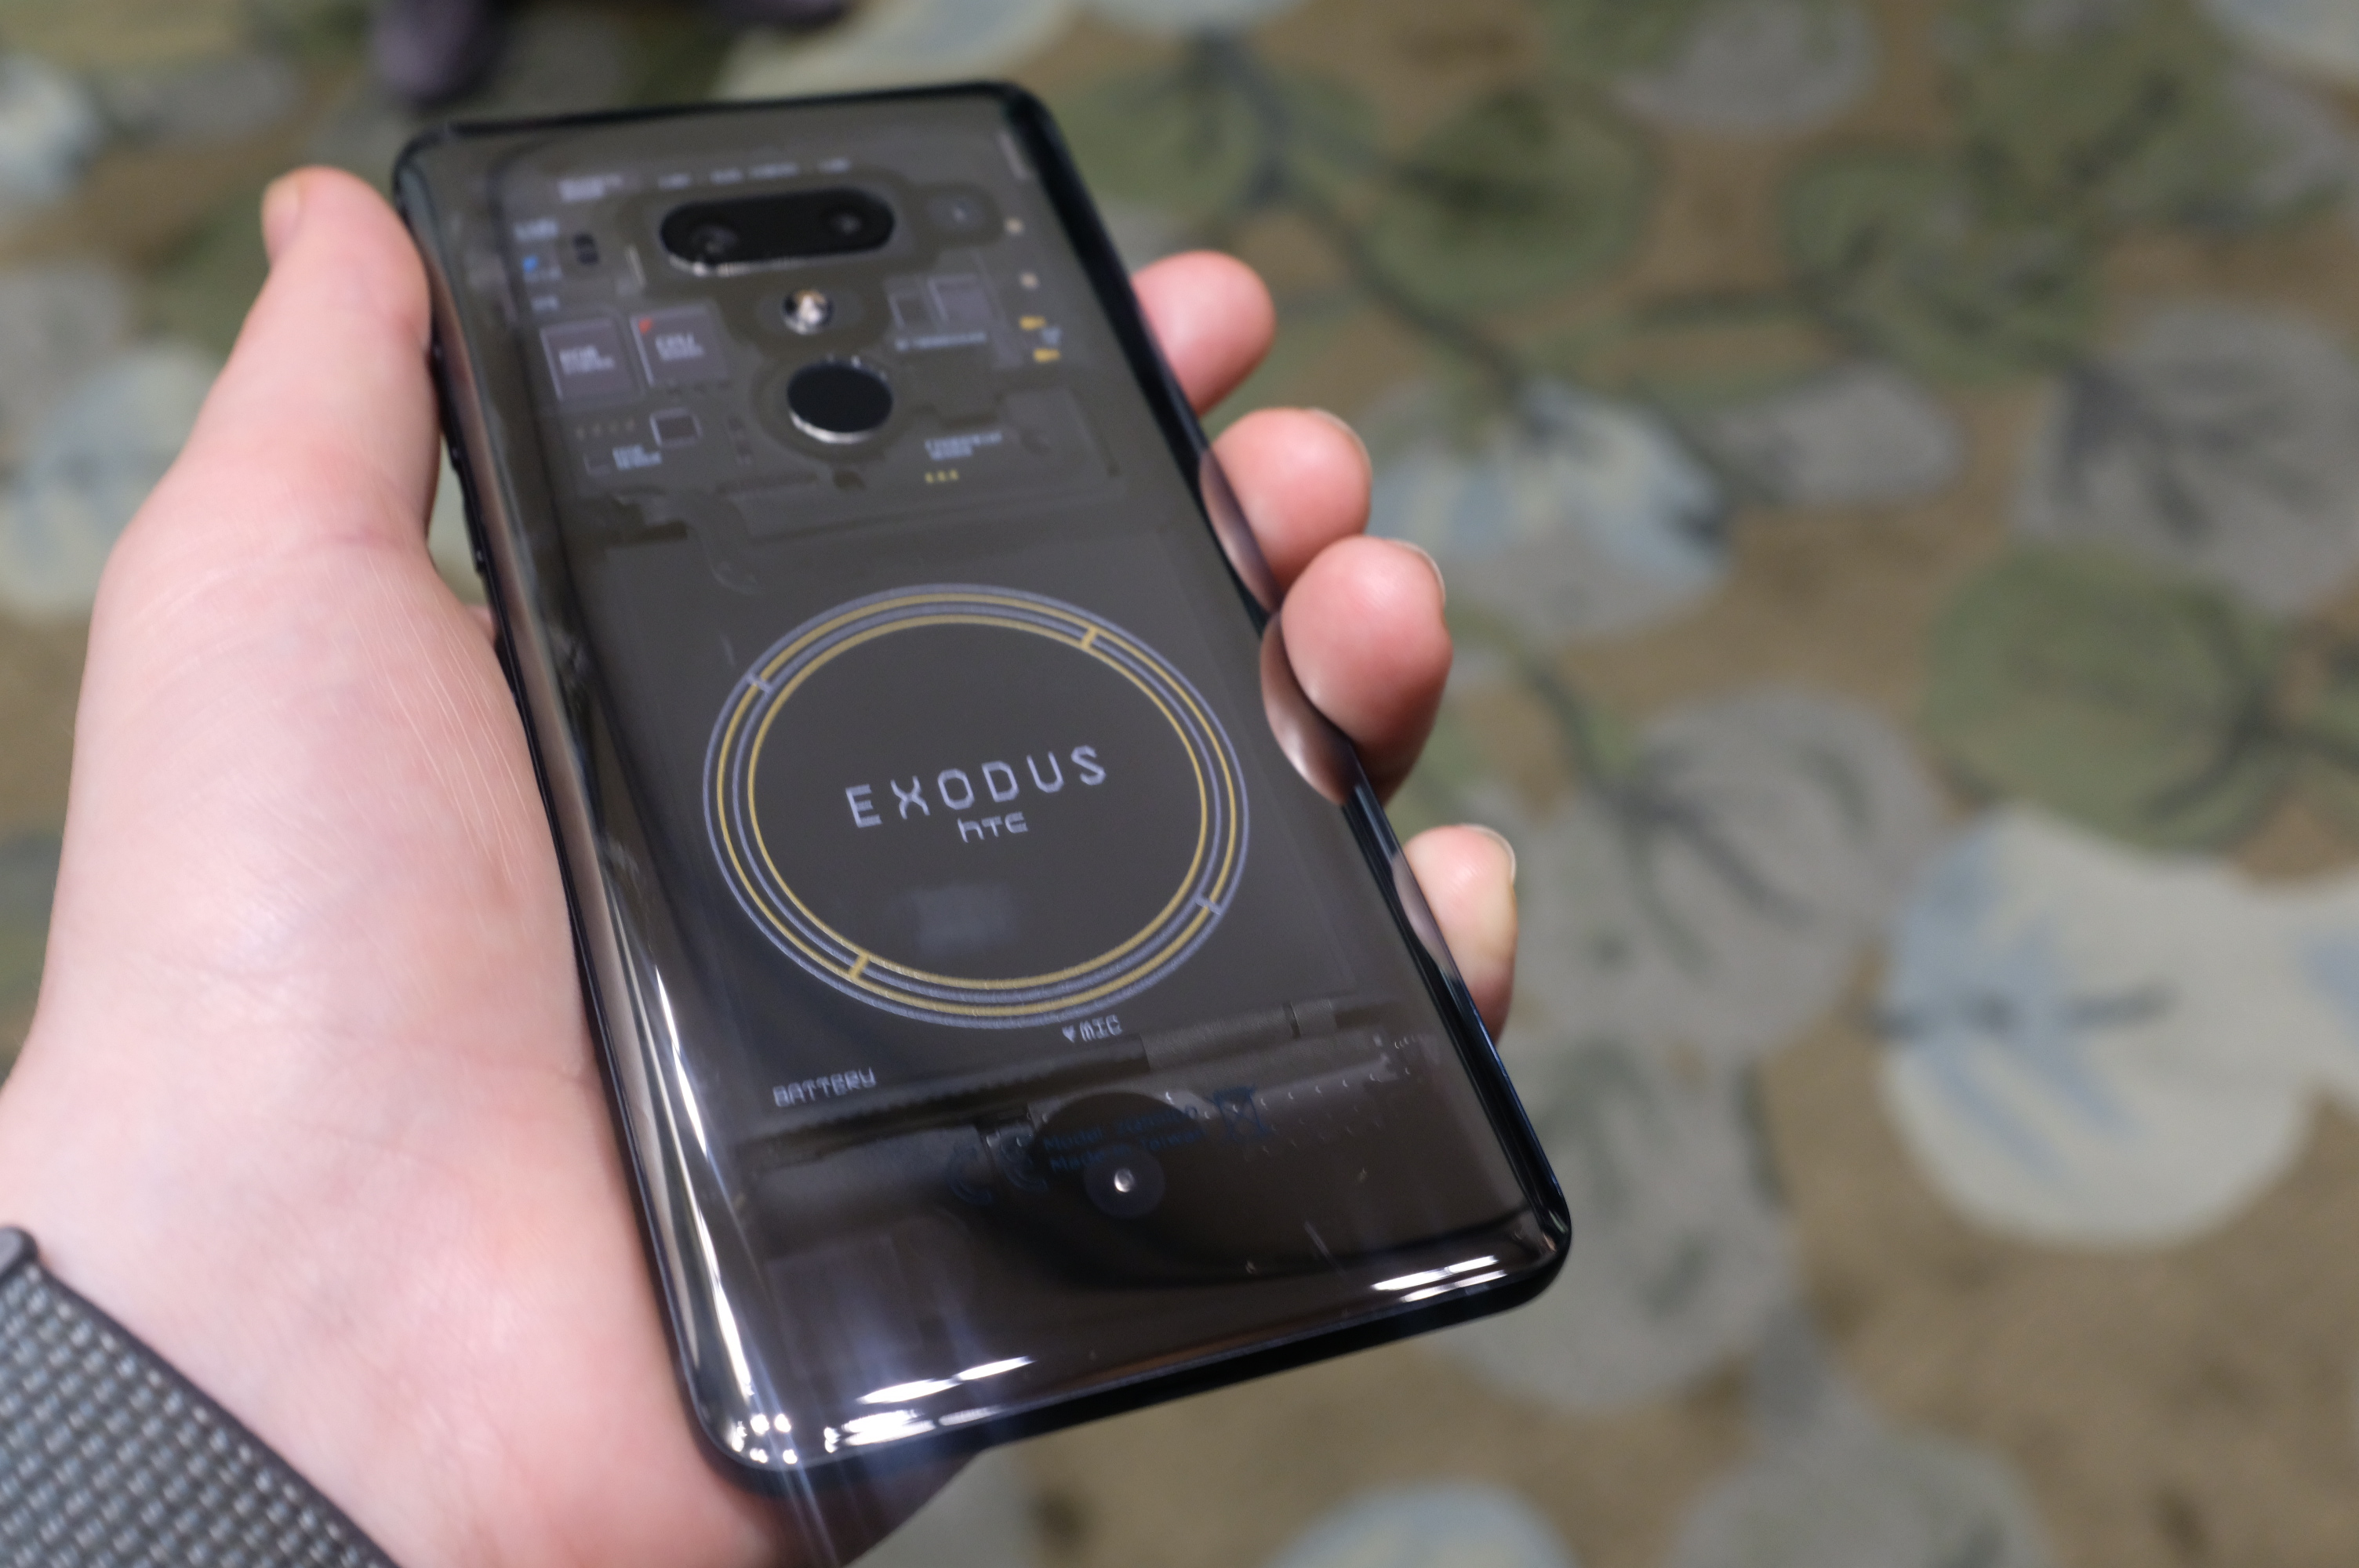 techcrunch.com - Brian Heater - A closer look at HTC's blockchain phone, the Exodus 1